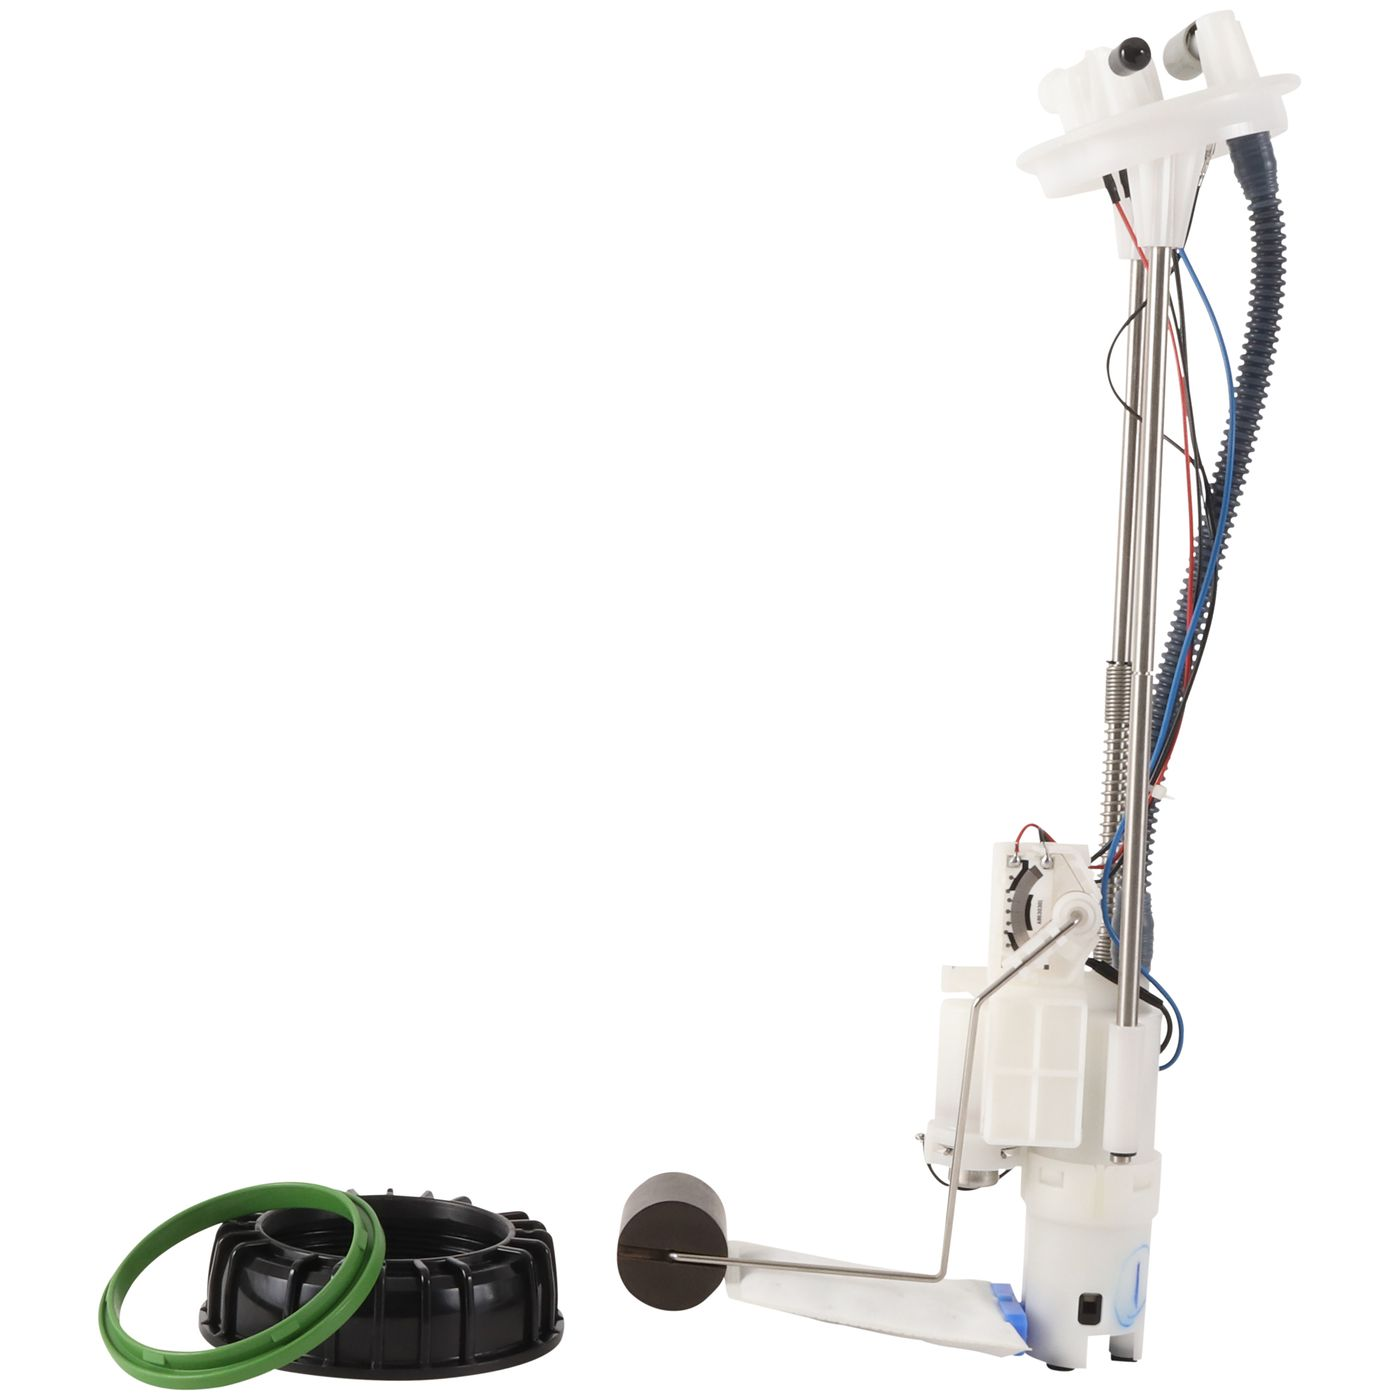 Wrp Fuel Pump Modules - WRP471029 image